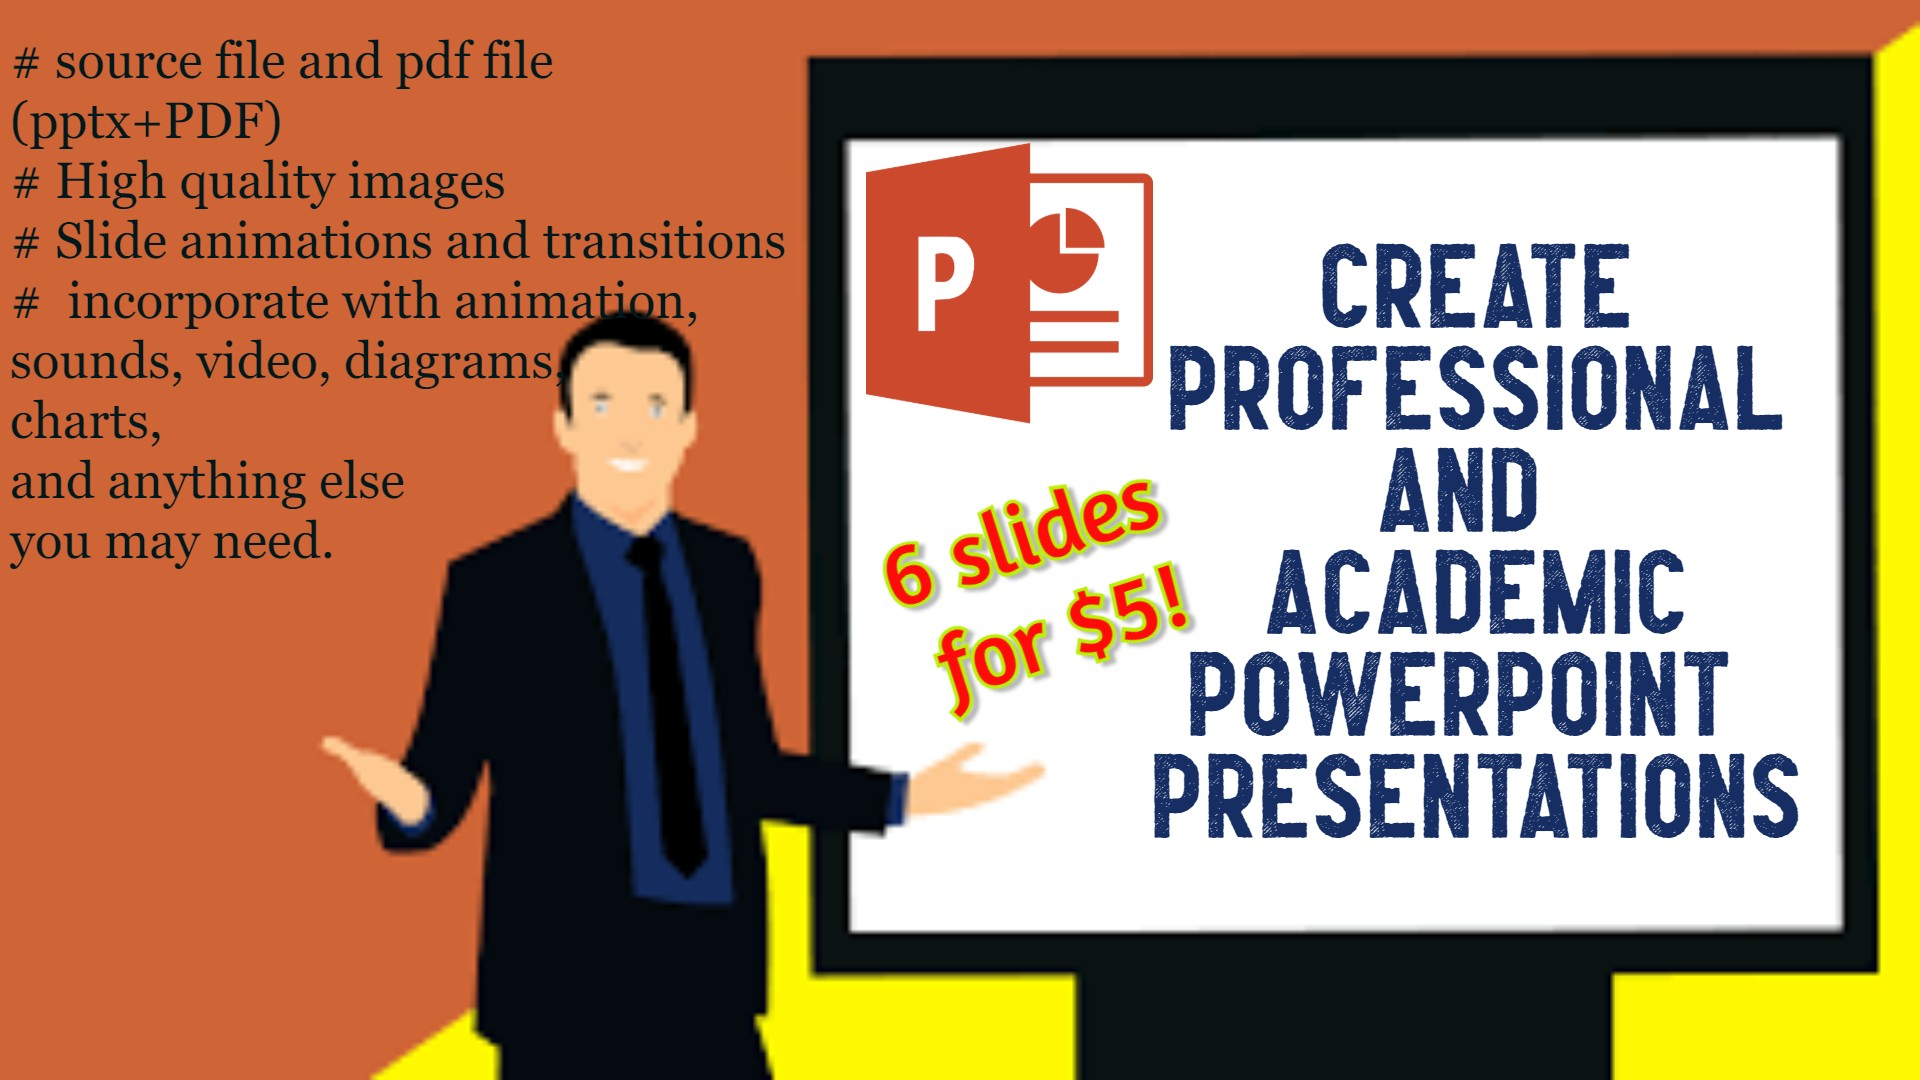 Create professional and academic ppt presentations